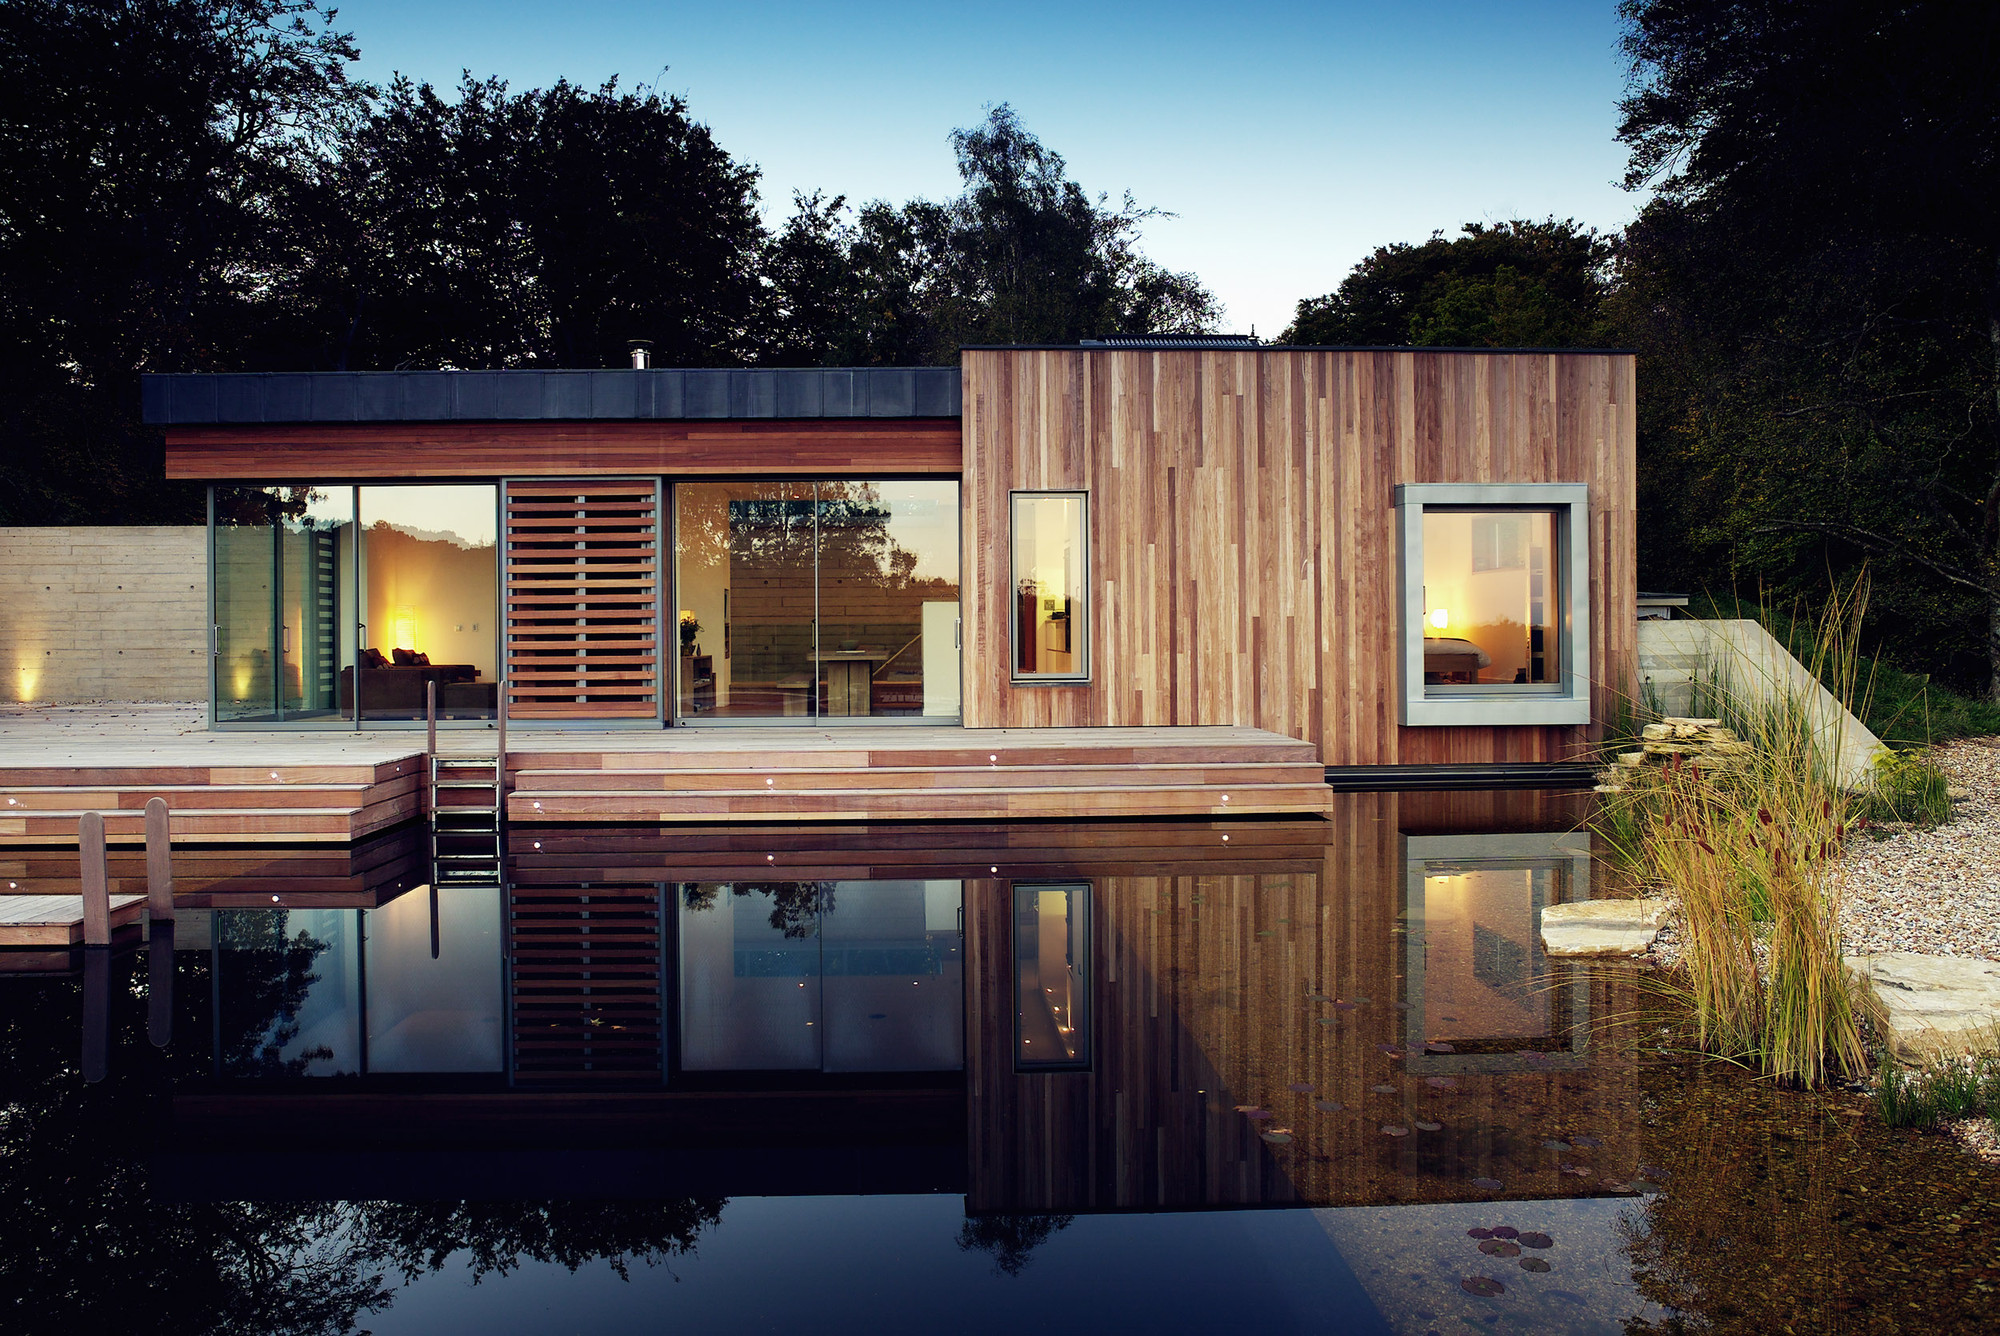 New Forest House / PAD studio, Courtesy of PAD Studio